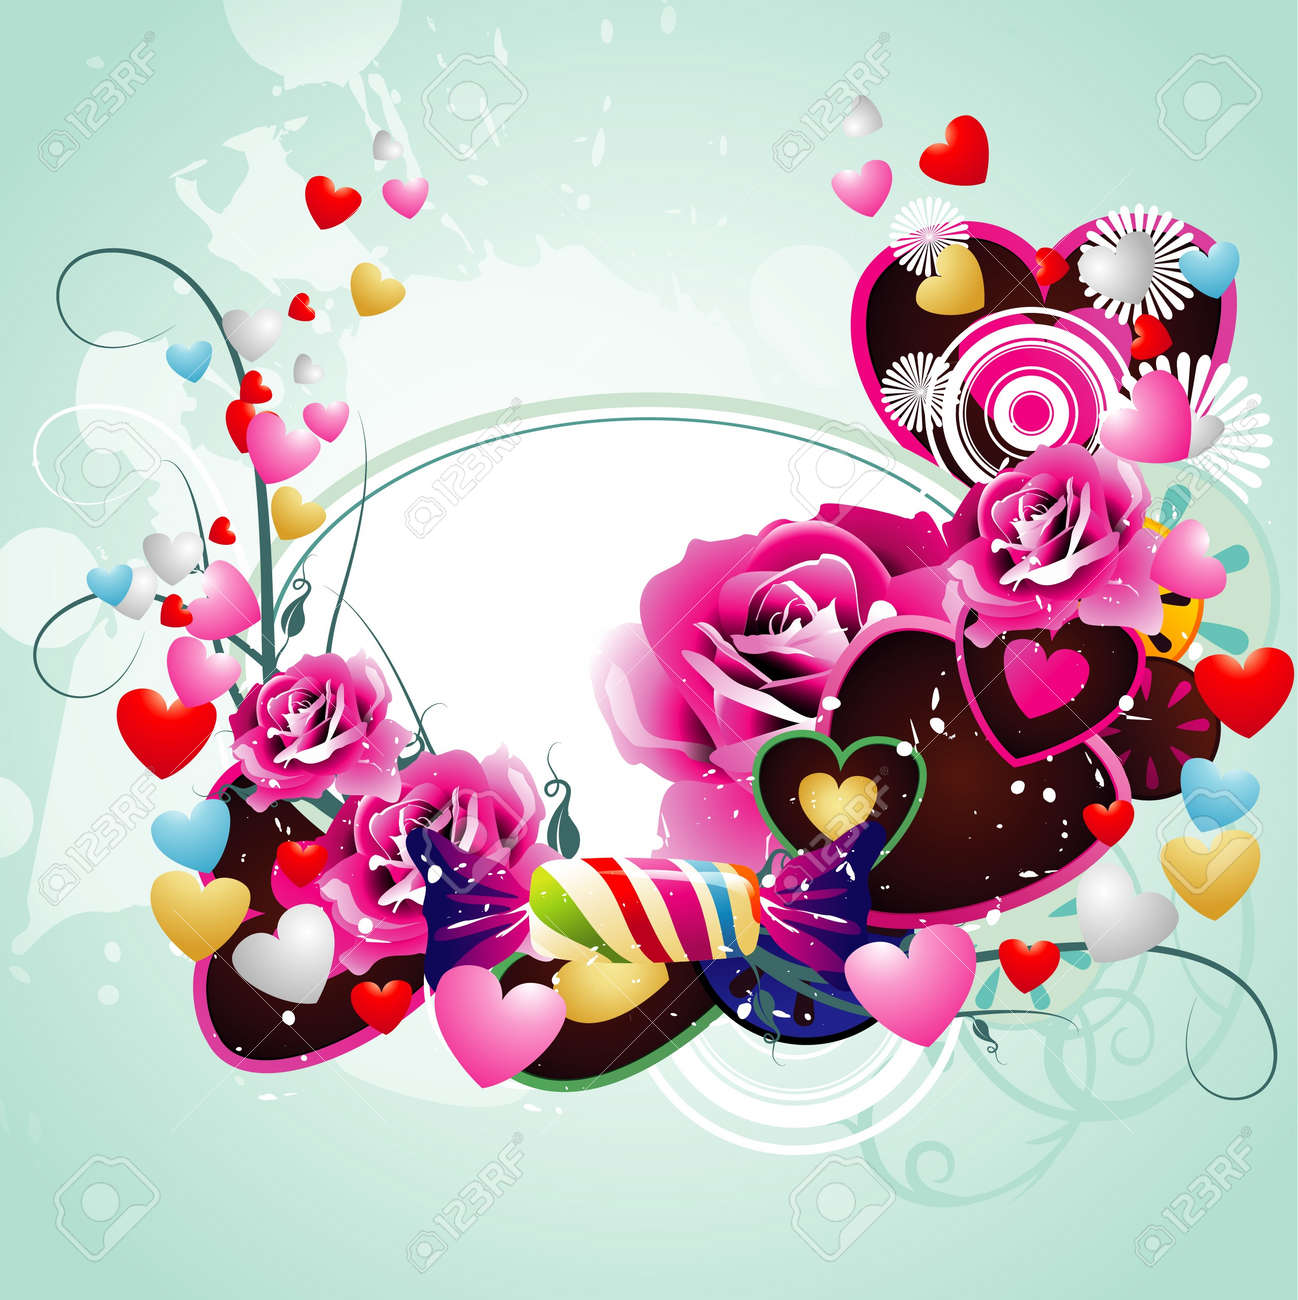 romantic hearts and flowers vector Stock Vector - 12150529